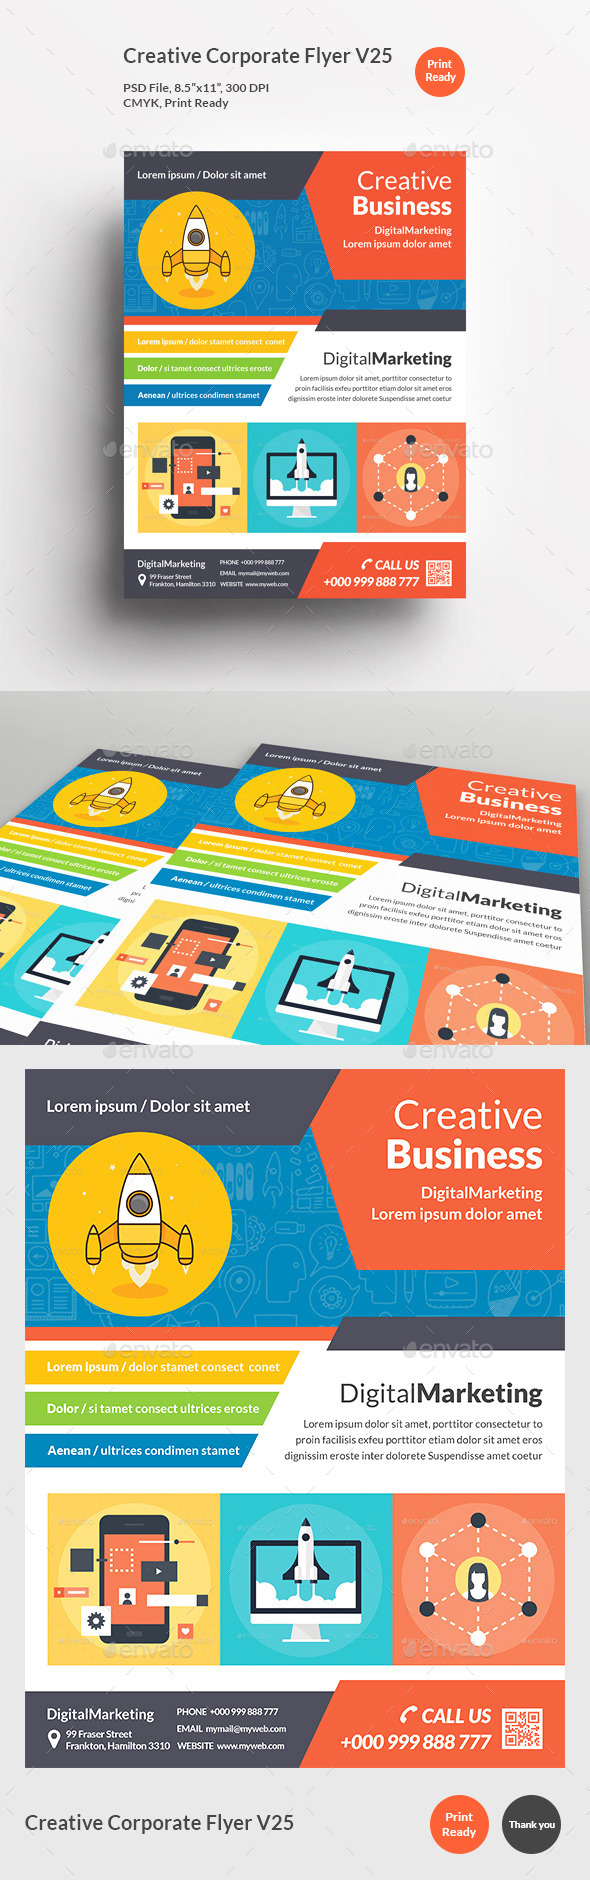 Creative Corporate Flyer V25 - Corporate Flyers